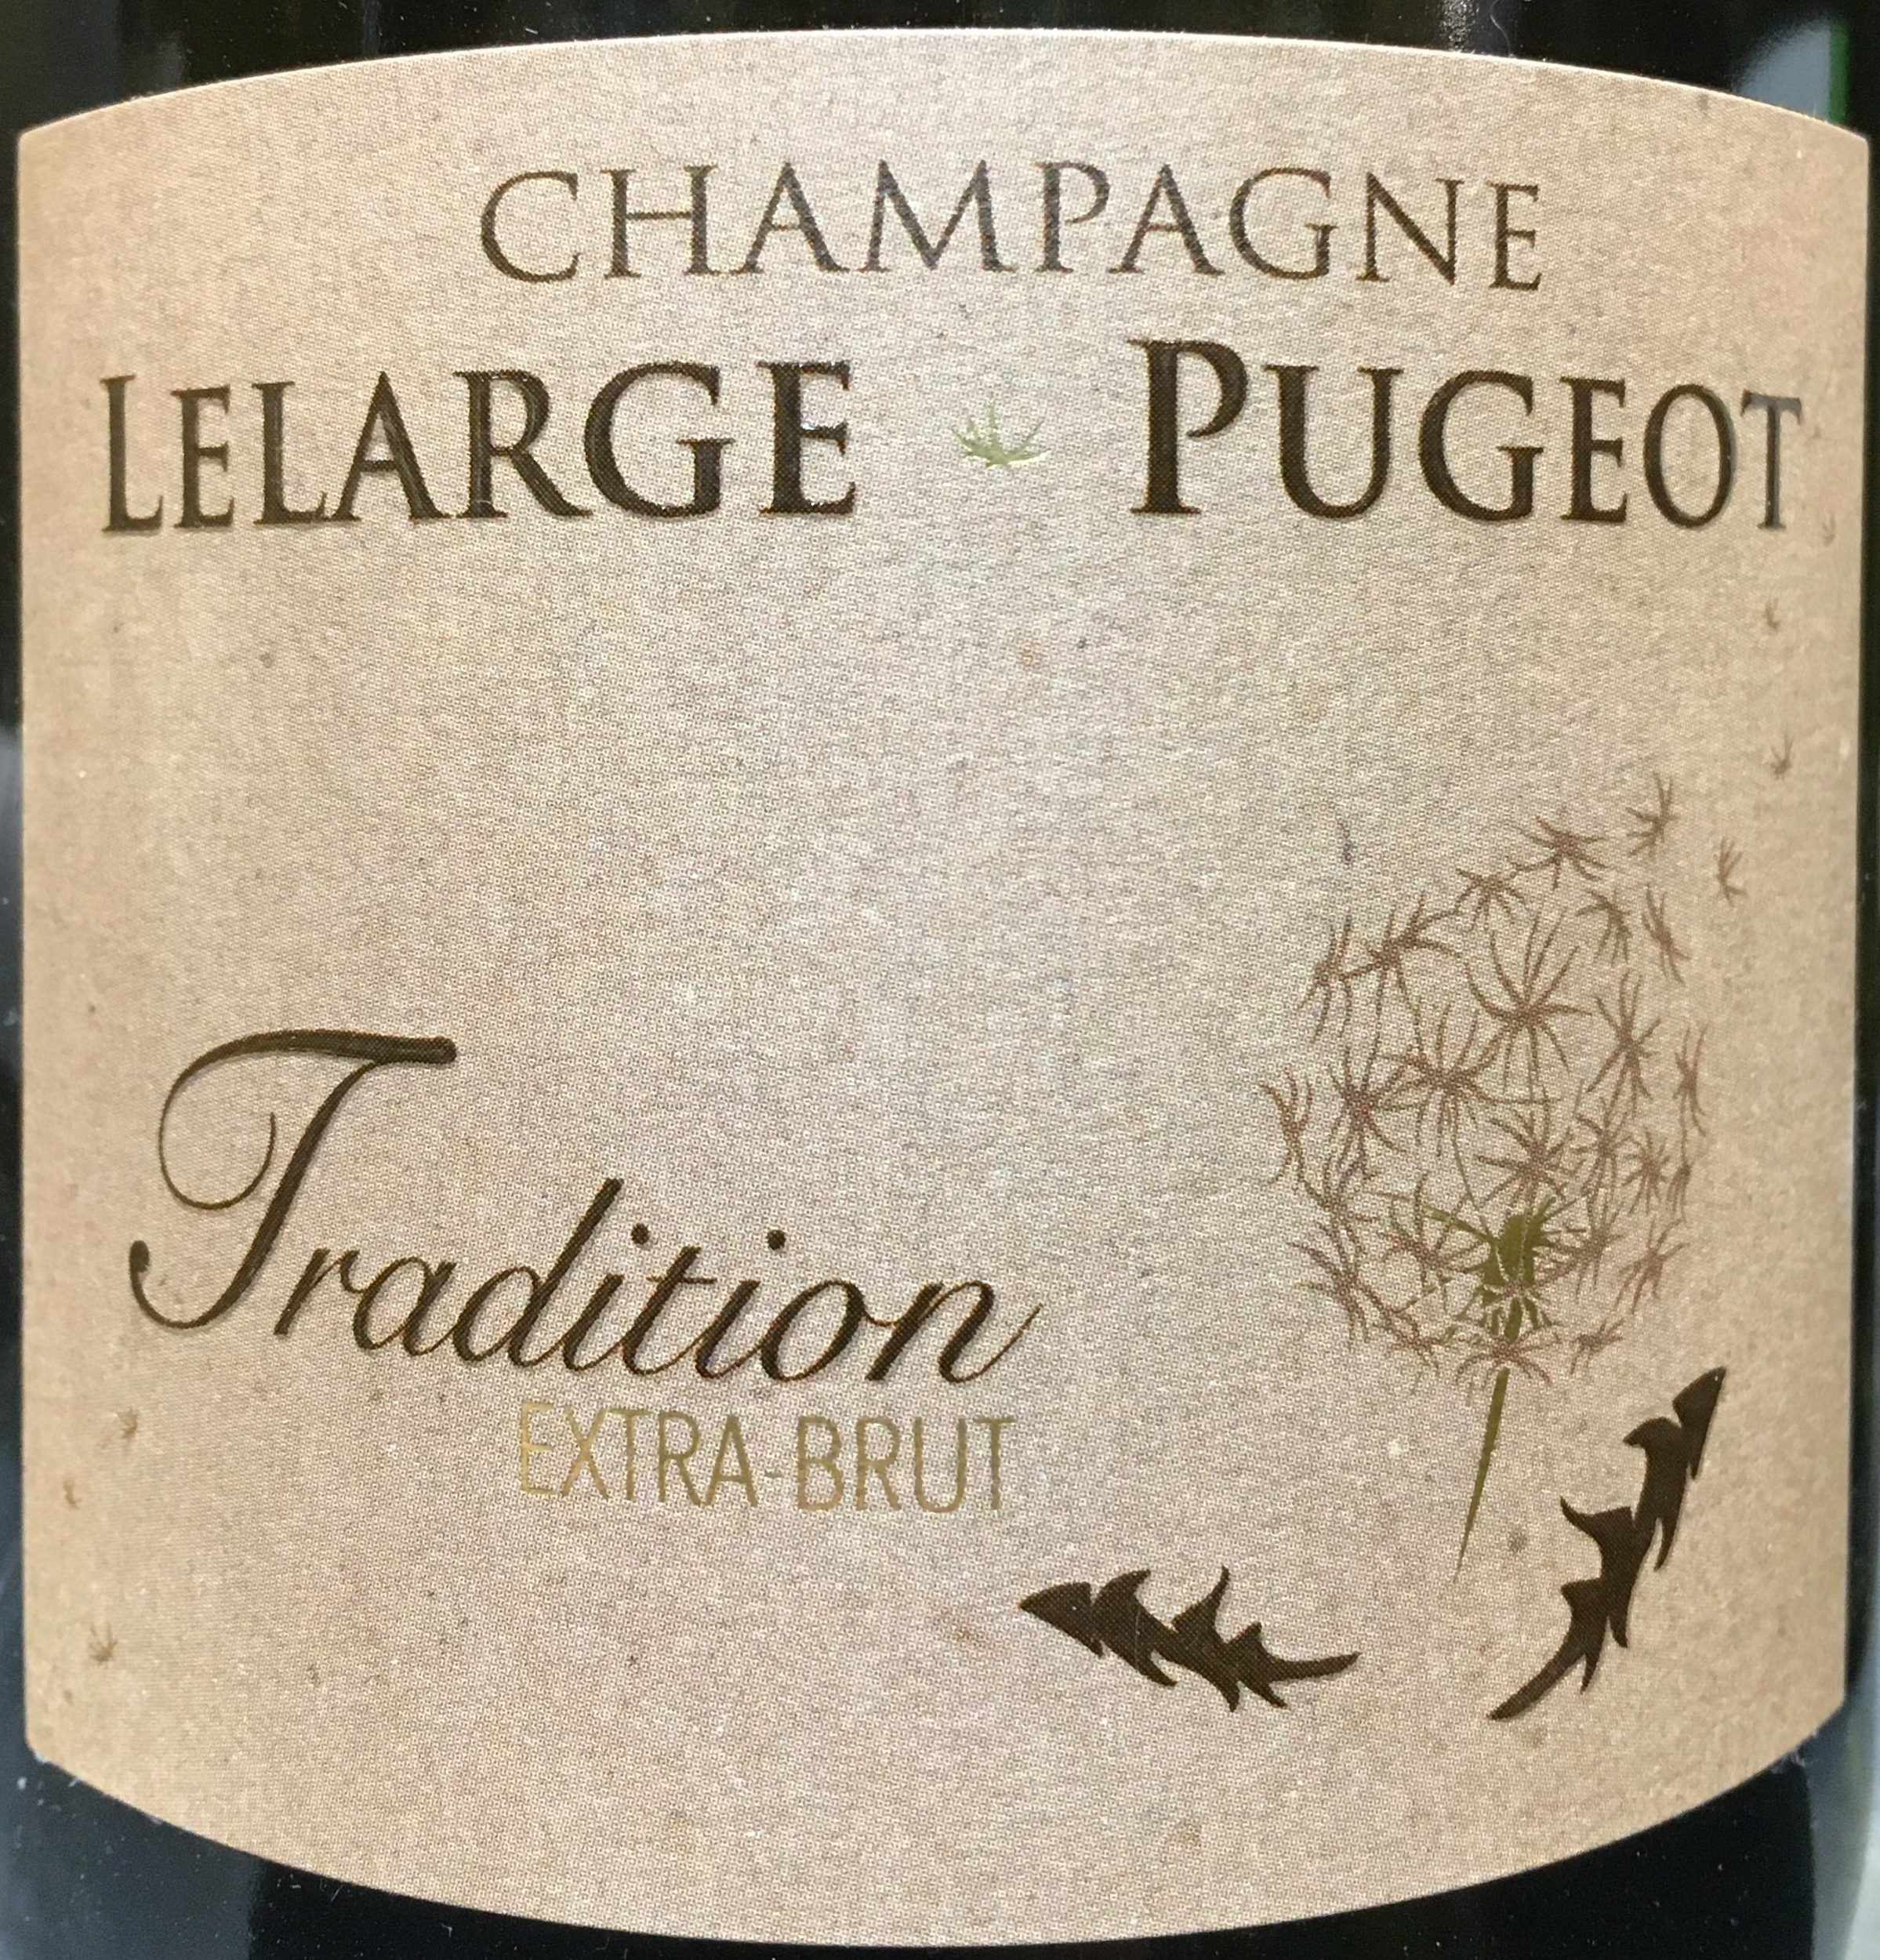 Lelarge-Pugeot Tradition Extra-Brut